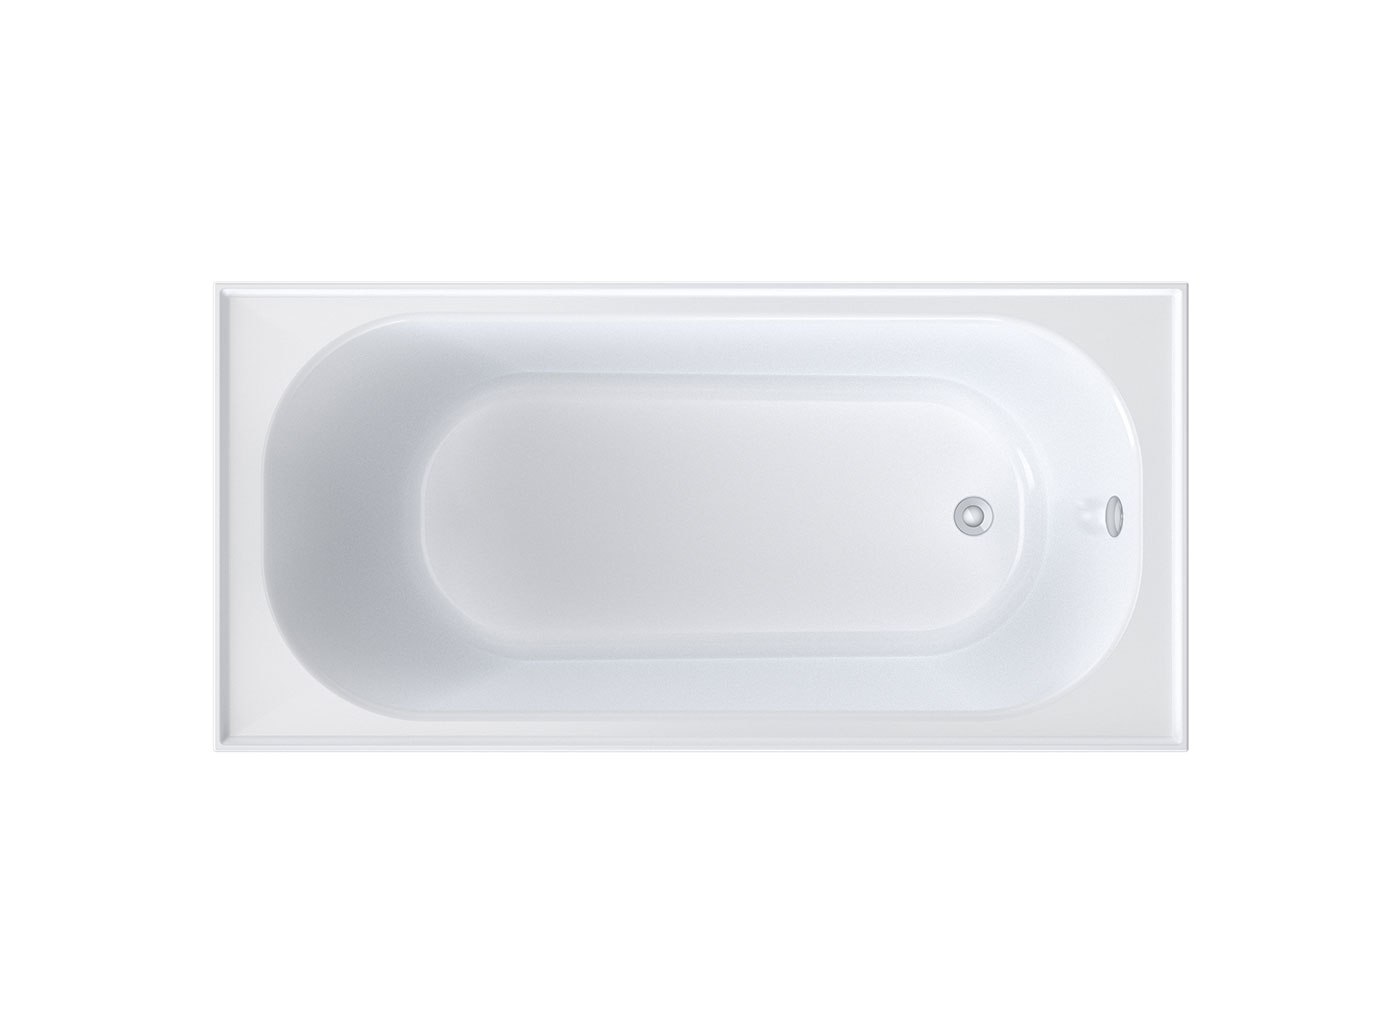 A bath the whole family will love. Beautifully designed with generous proportions